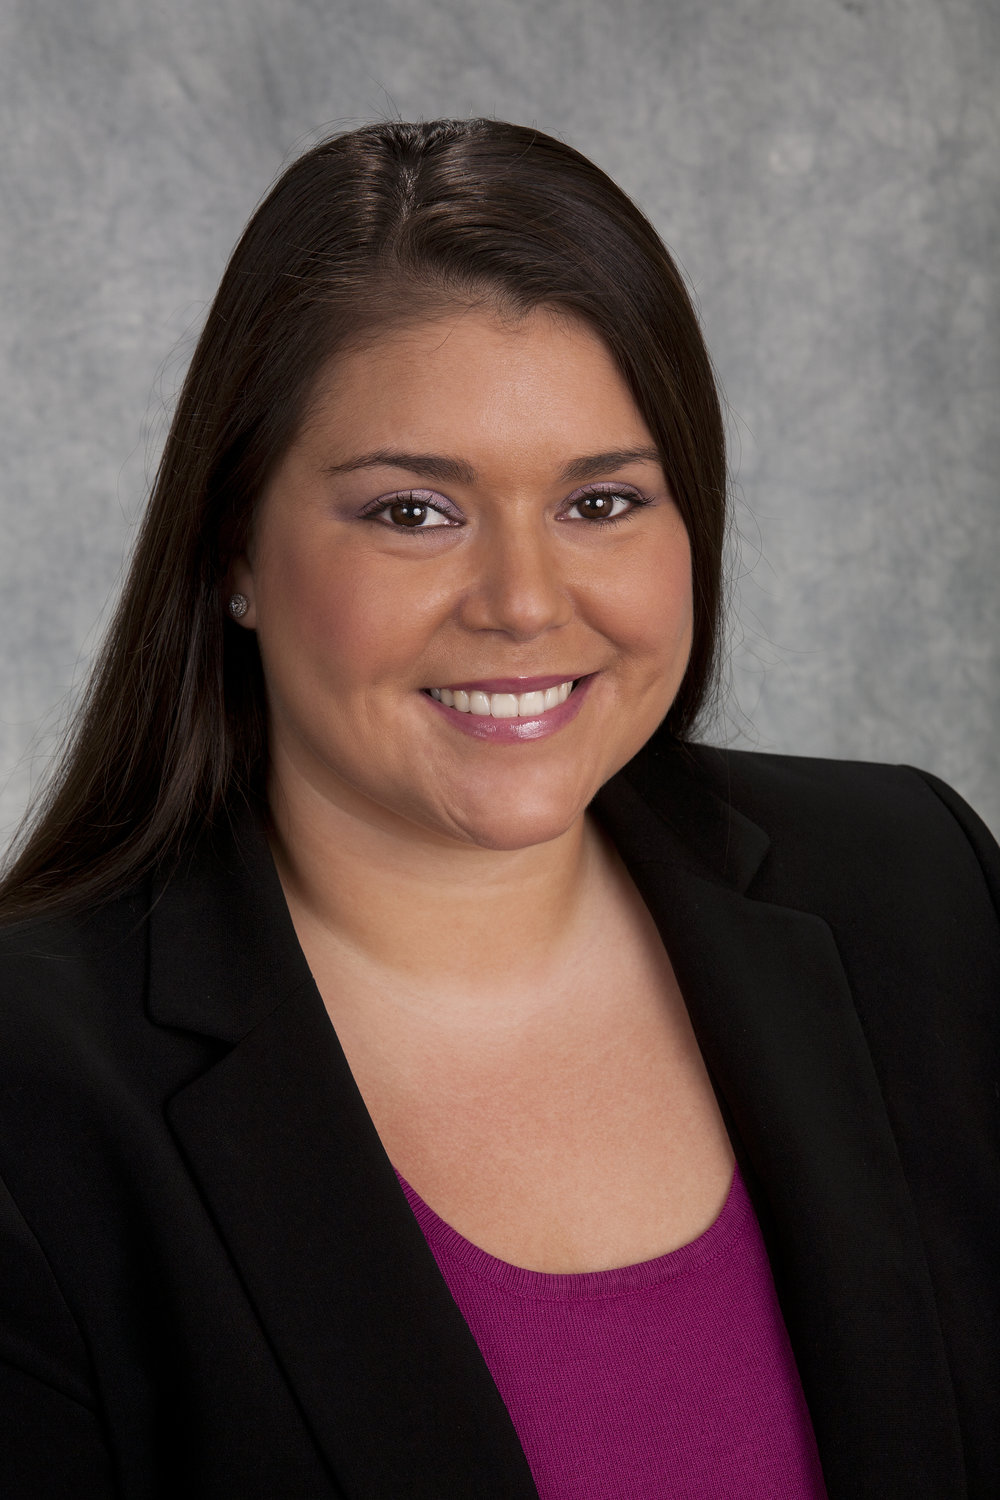 Christyna M. Torrez   Upon graduating from law school, Christyna joined the firm as an associate attorney after having spent the previous five summers (2002 - 2006) working at the firm as an intern and summer associate. Christyna represents businesses and individuals in a variety of matters including shareholder disputes, trust and estate litigation, employment litigation, and more.